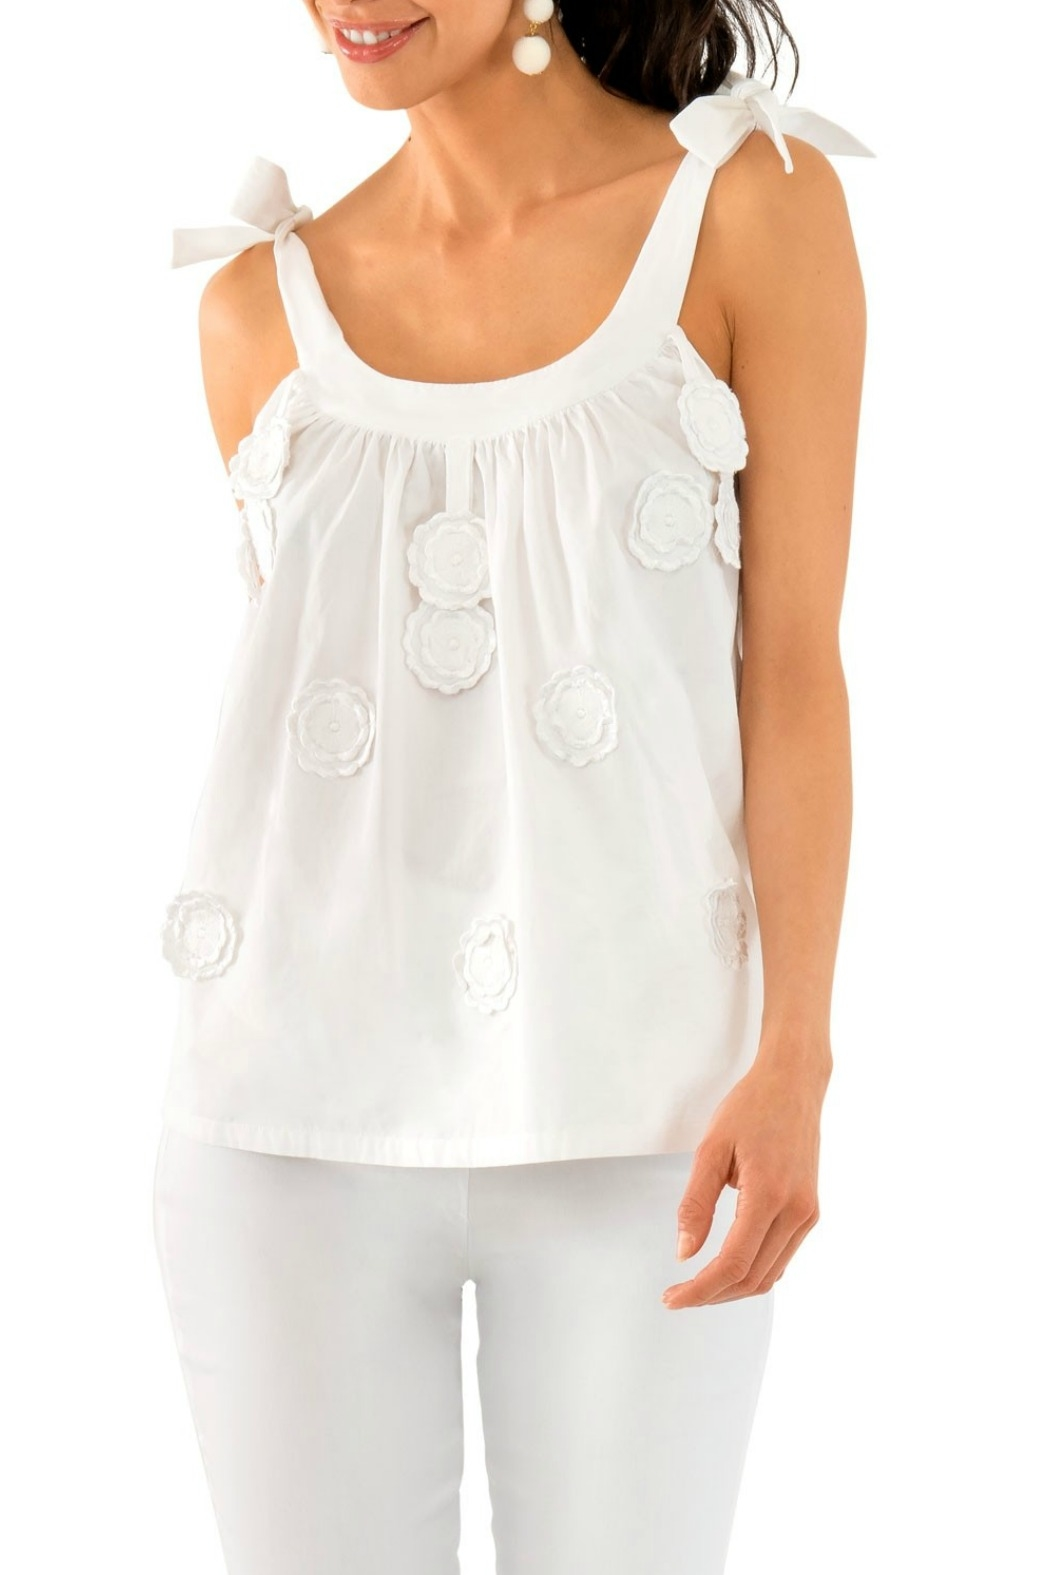 Gretchen Scott Girly Girl - Cotton Embroidered Top - Main Image